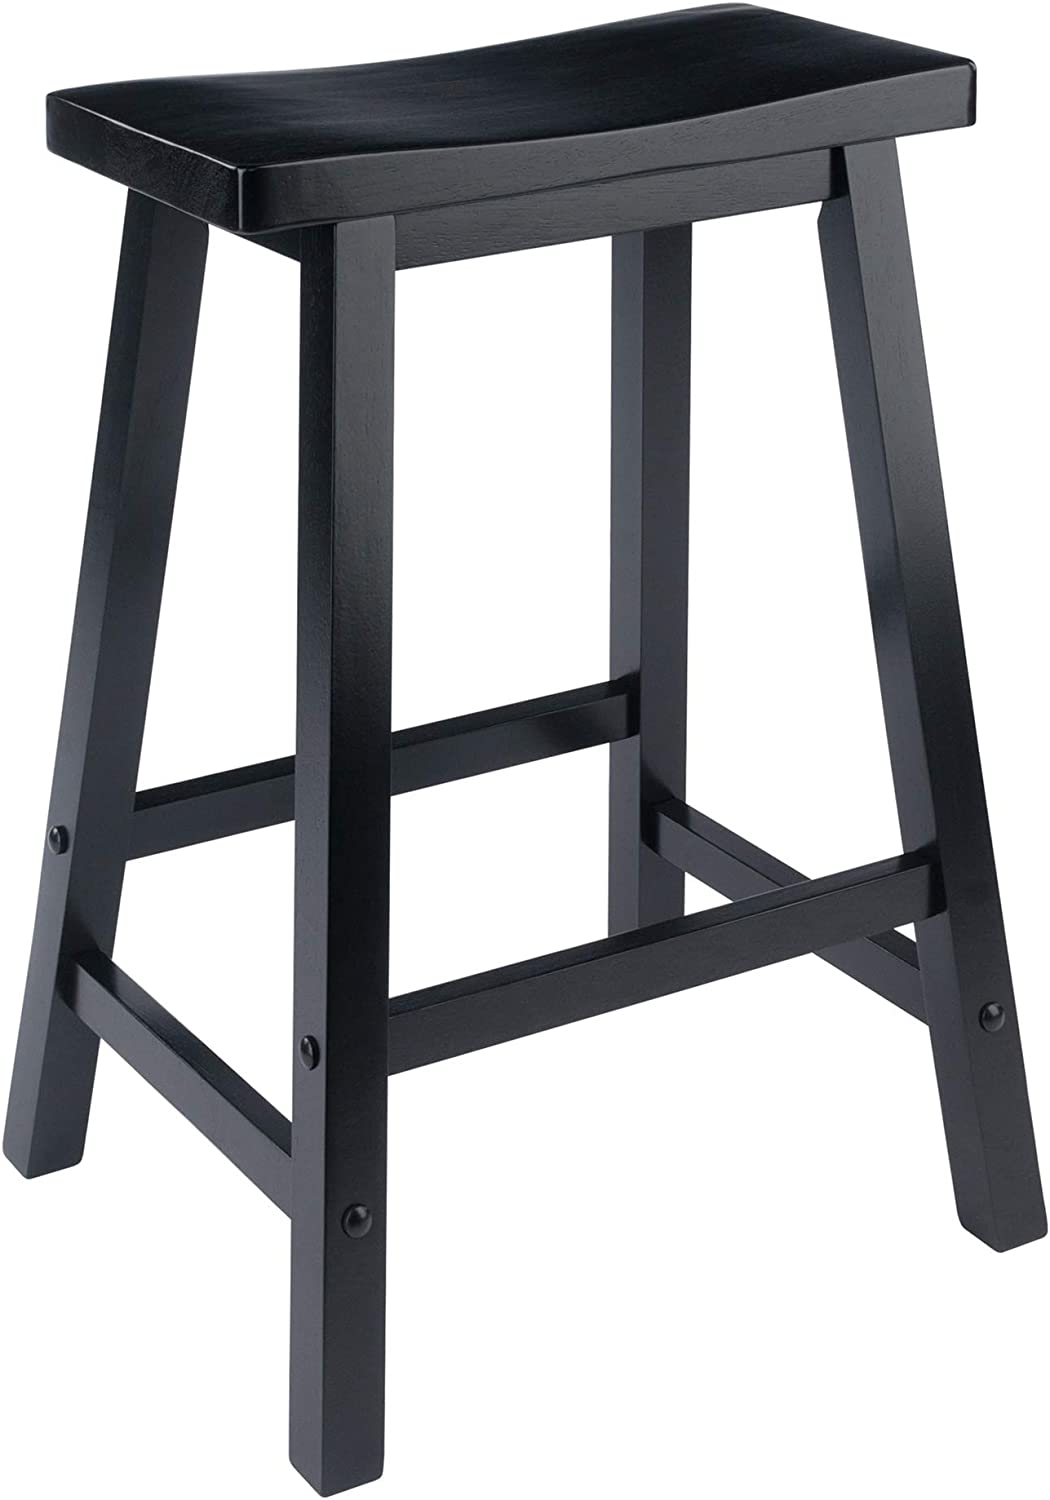 Winsome 20084 Satori Stool 24 Black Amazon Co Uk Kitchen Home